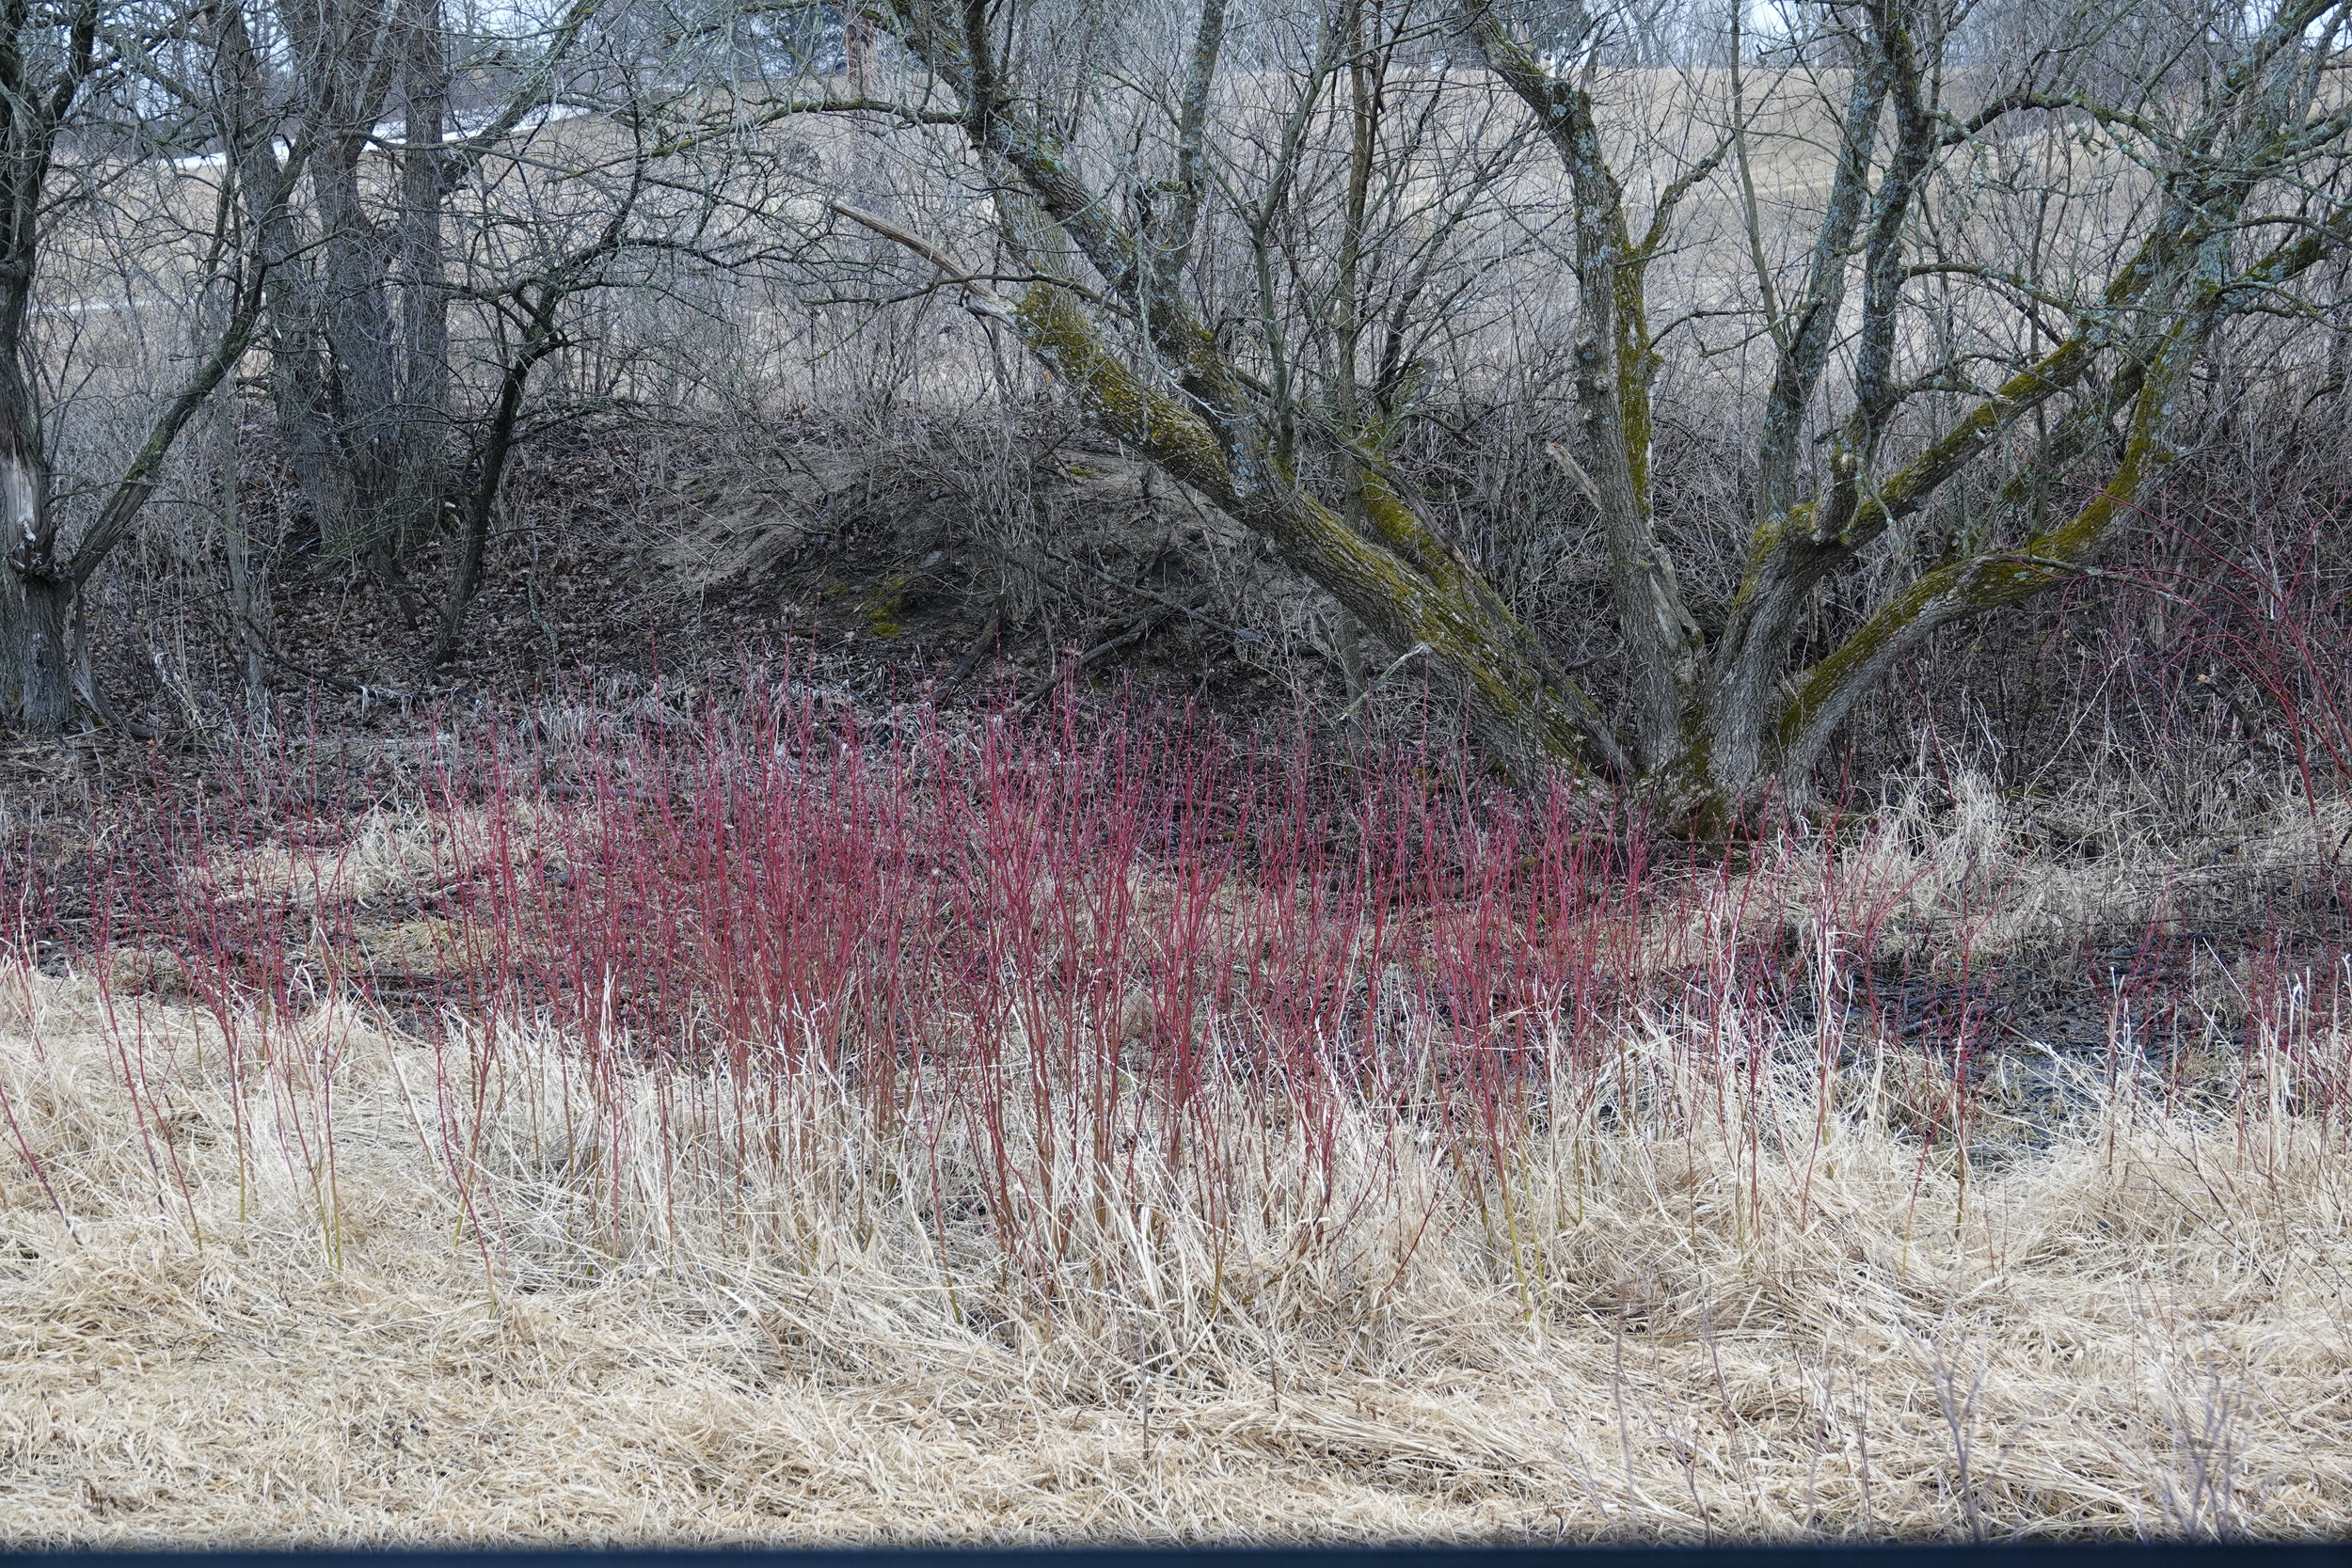 Red-osier dogwood provides the red veins of spring.